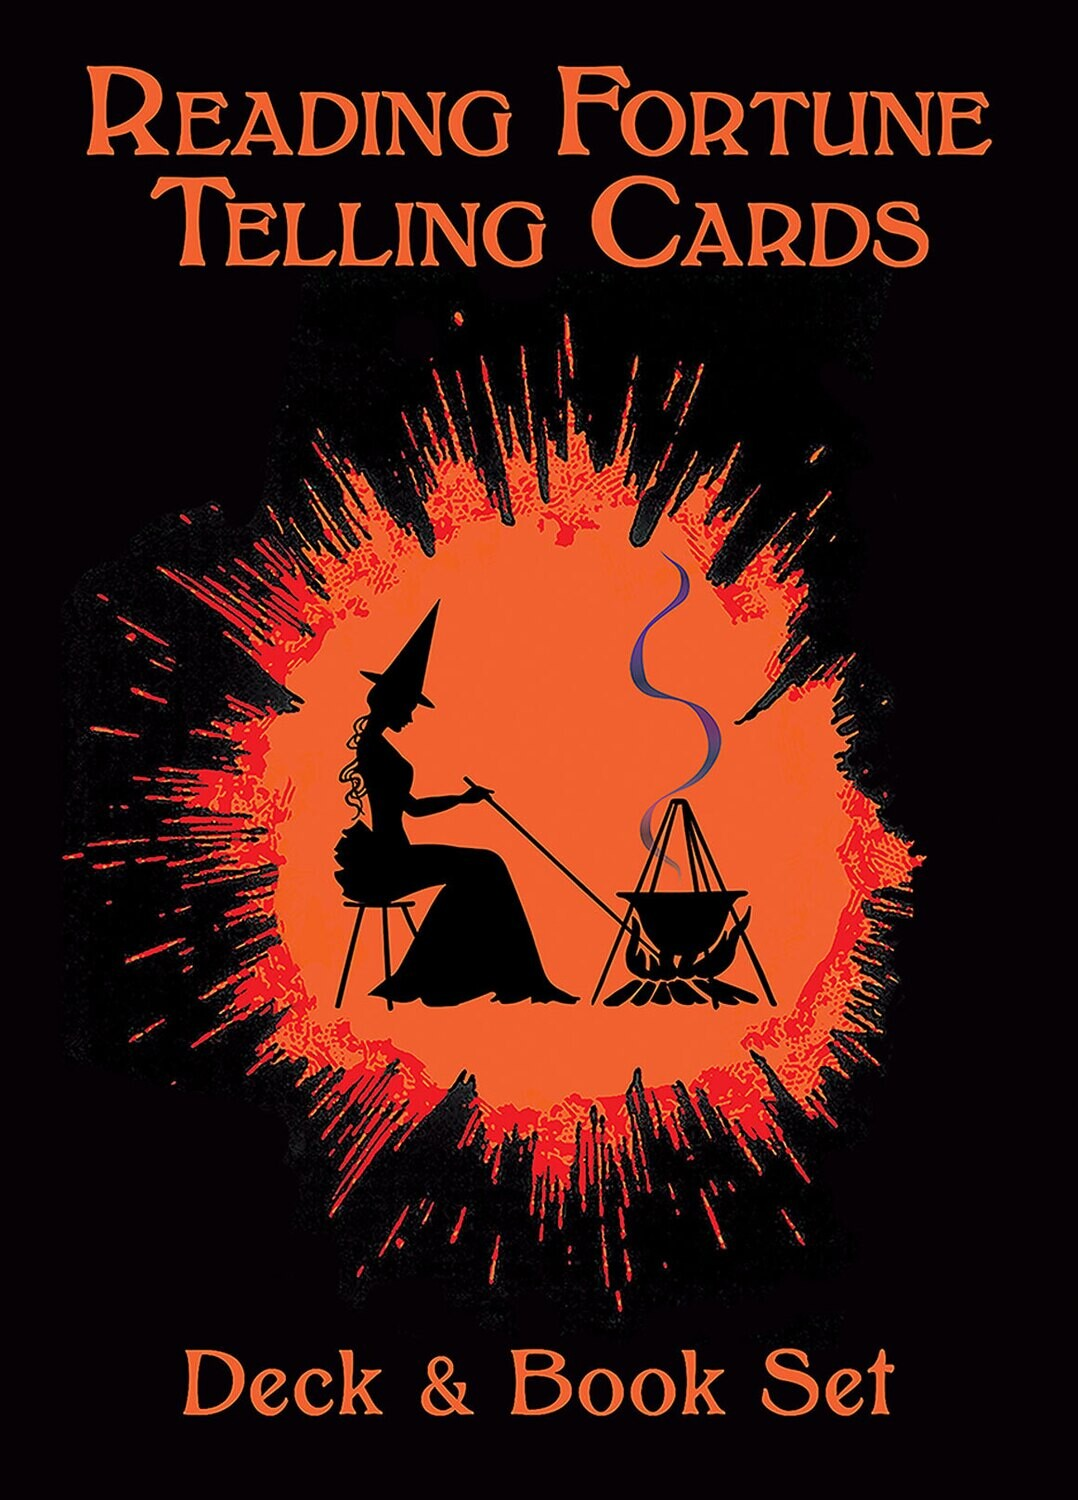 Reading Fortune Telling Cards deck & book set